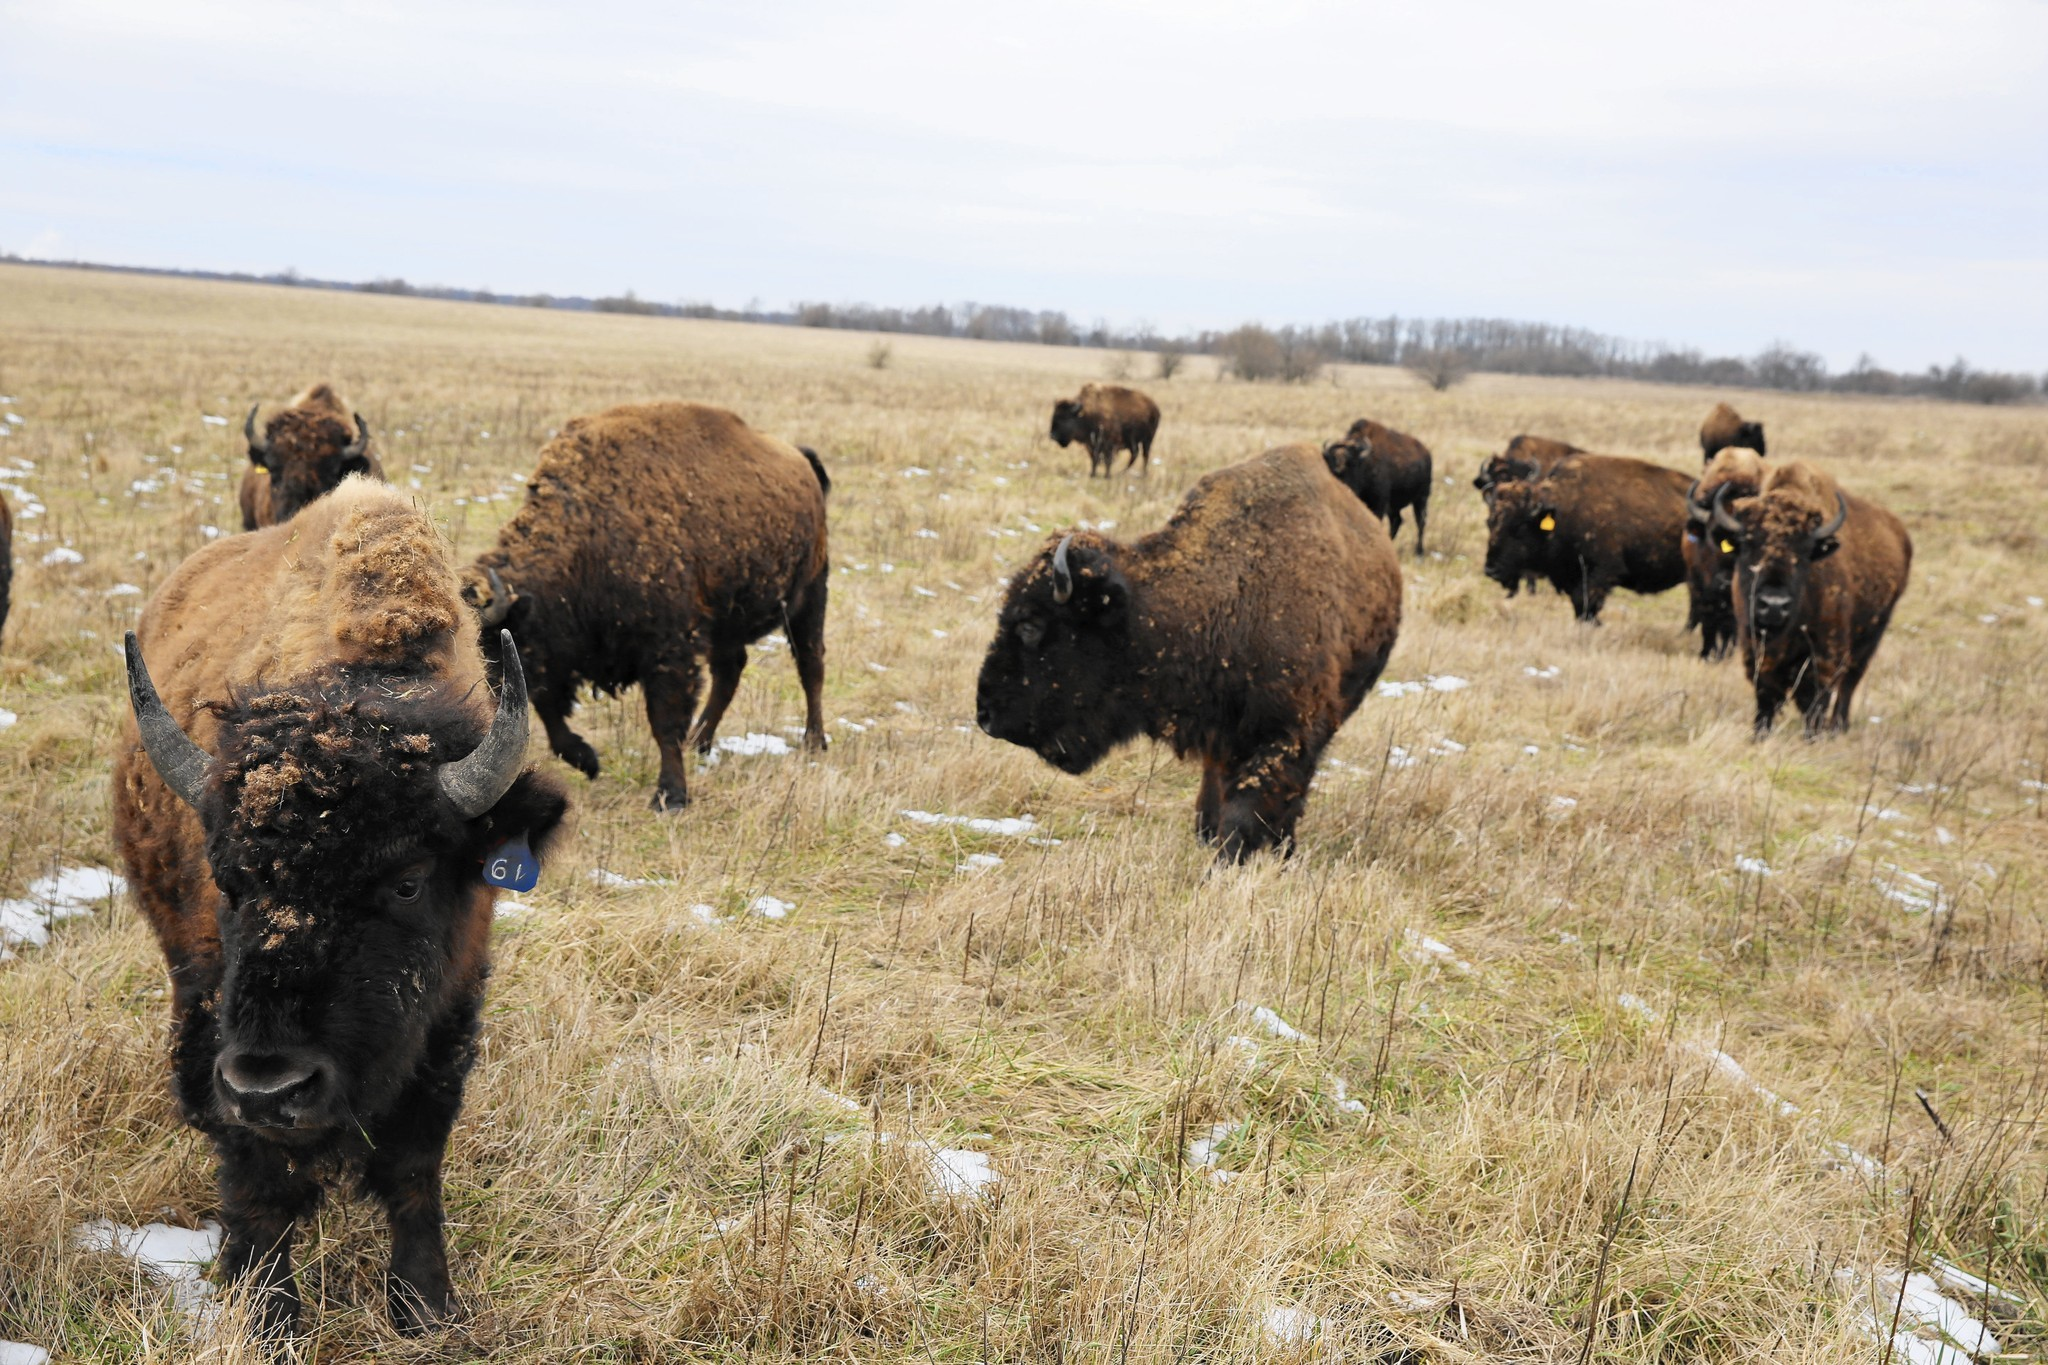 Daytripping: Go south on Route 53 to see bison, race cars, antiques